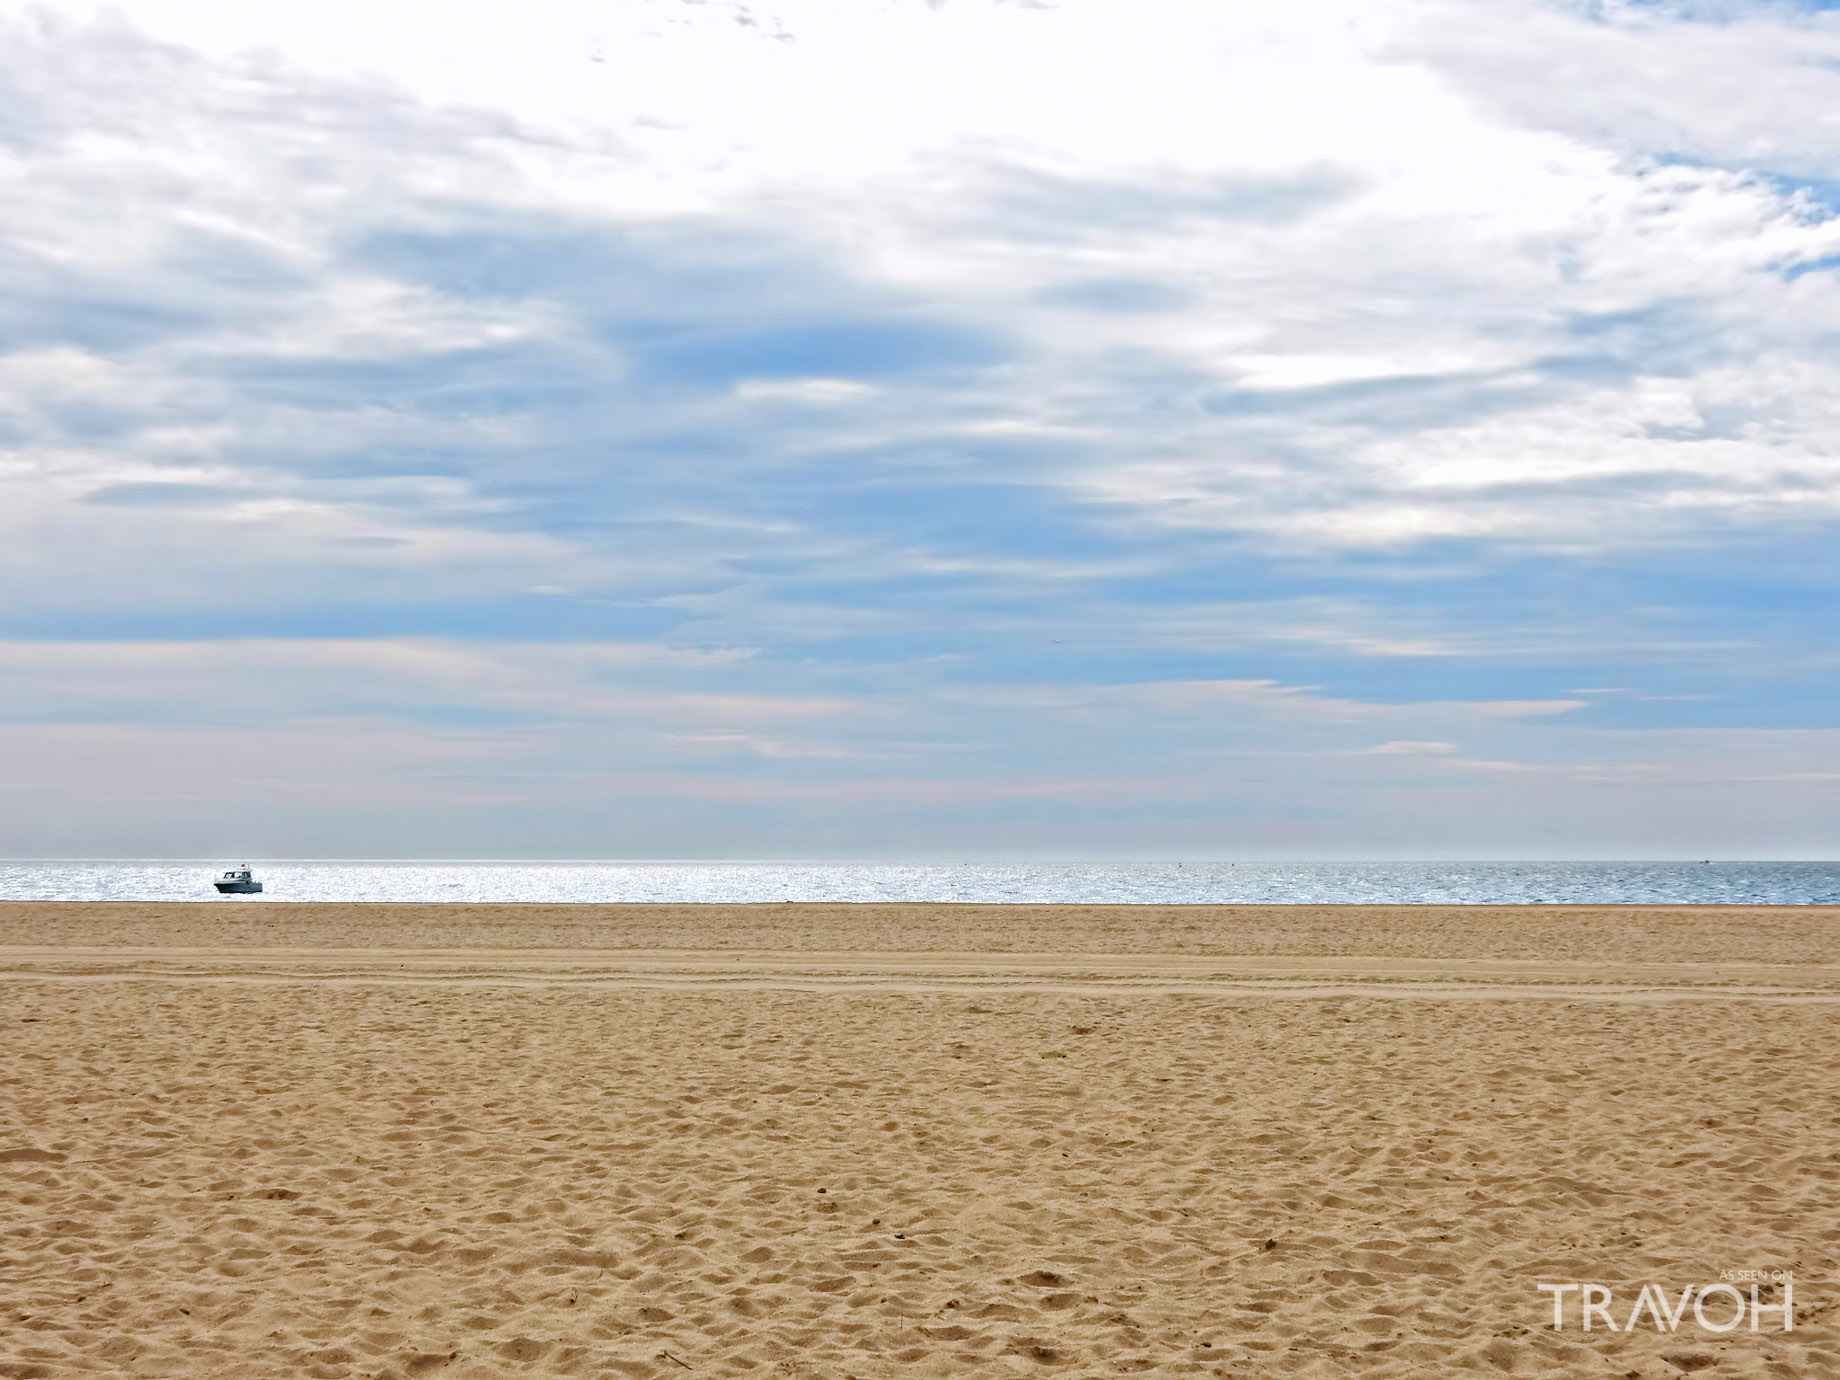 Ocata Beach - Exploring 10 of the Top Beaches in Barcelona, Spain